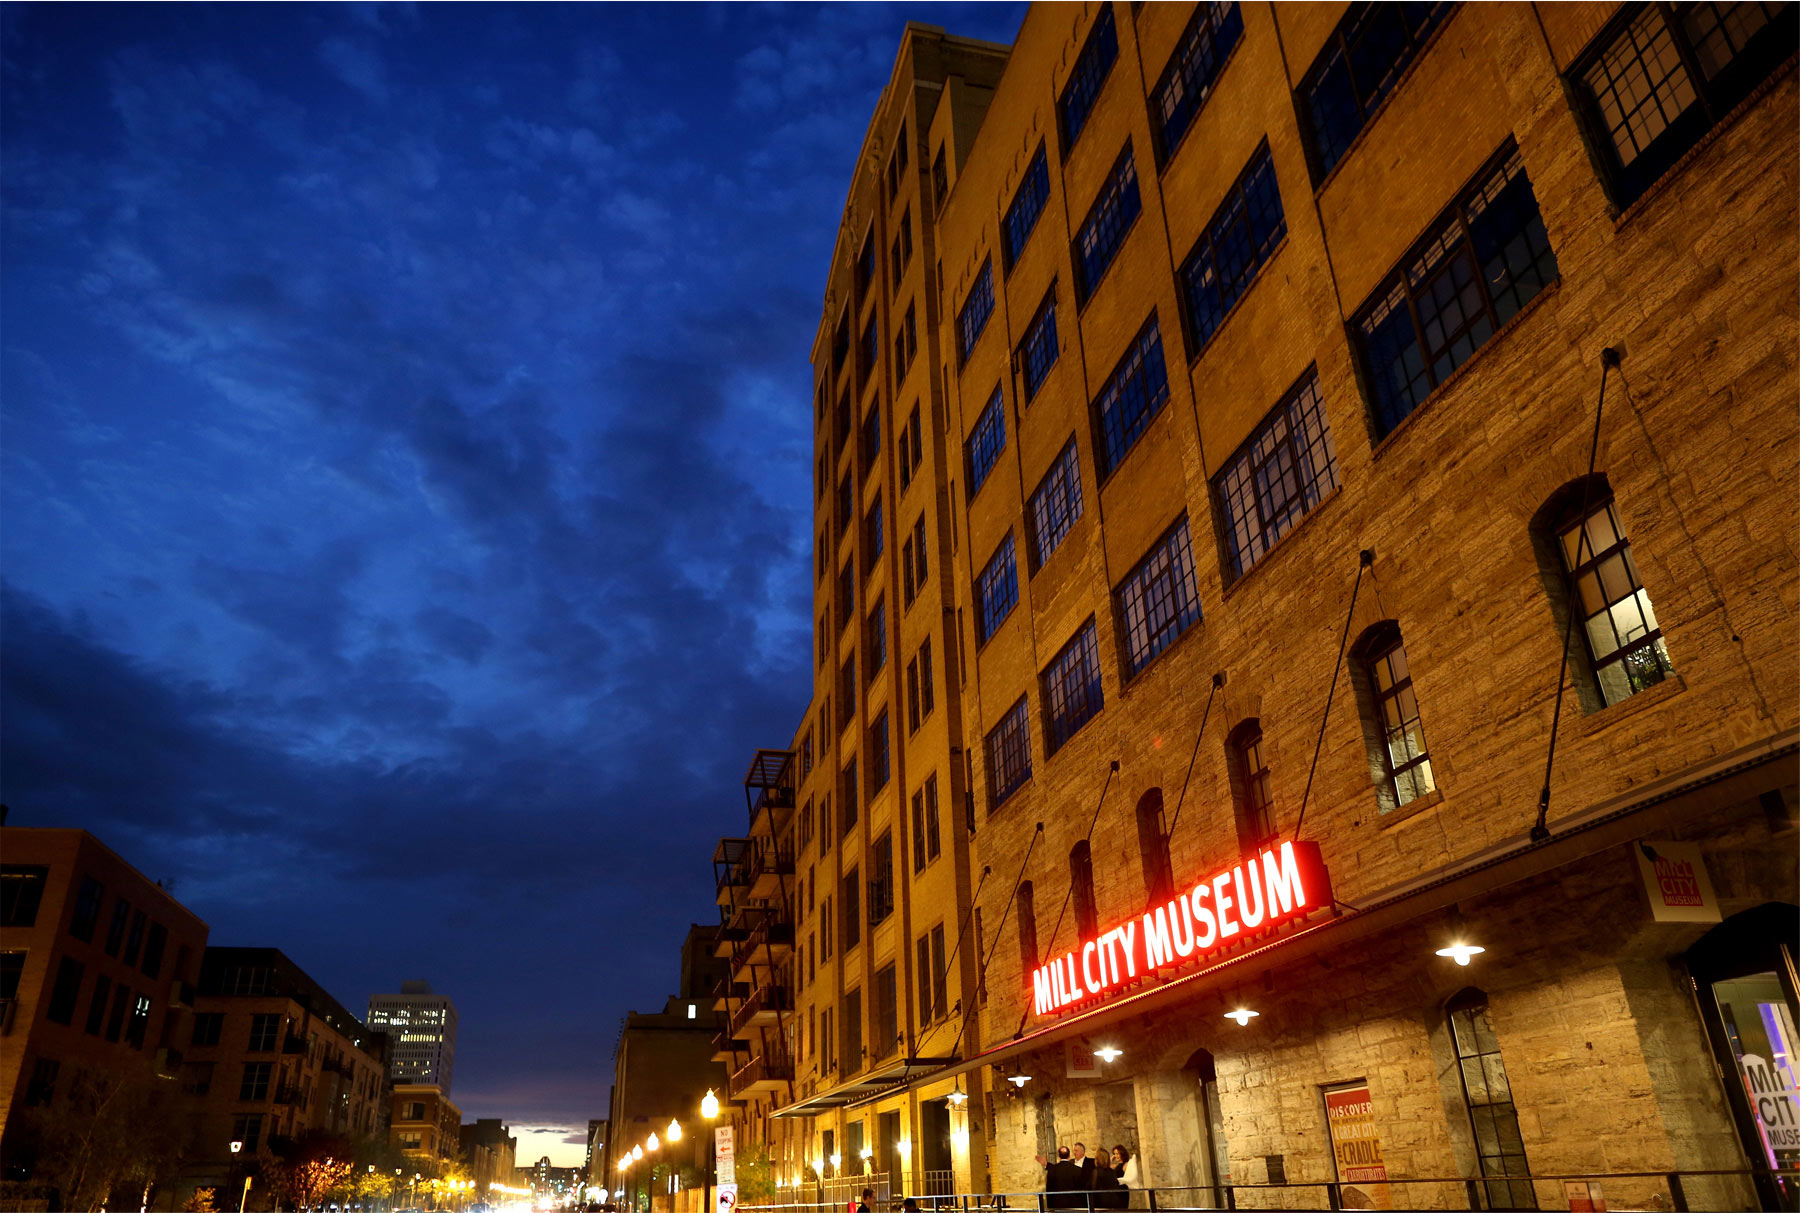 19-Minneapolis-Minnesota-Wedding-Photographer-by-Andrew-Vick-Photography-Spring-Mill-City-Museum-Downtown-Sign-Night-Dannette-and-Darren.jpg